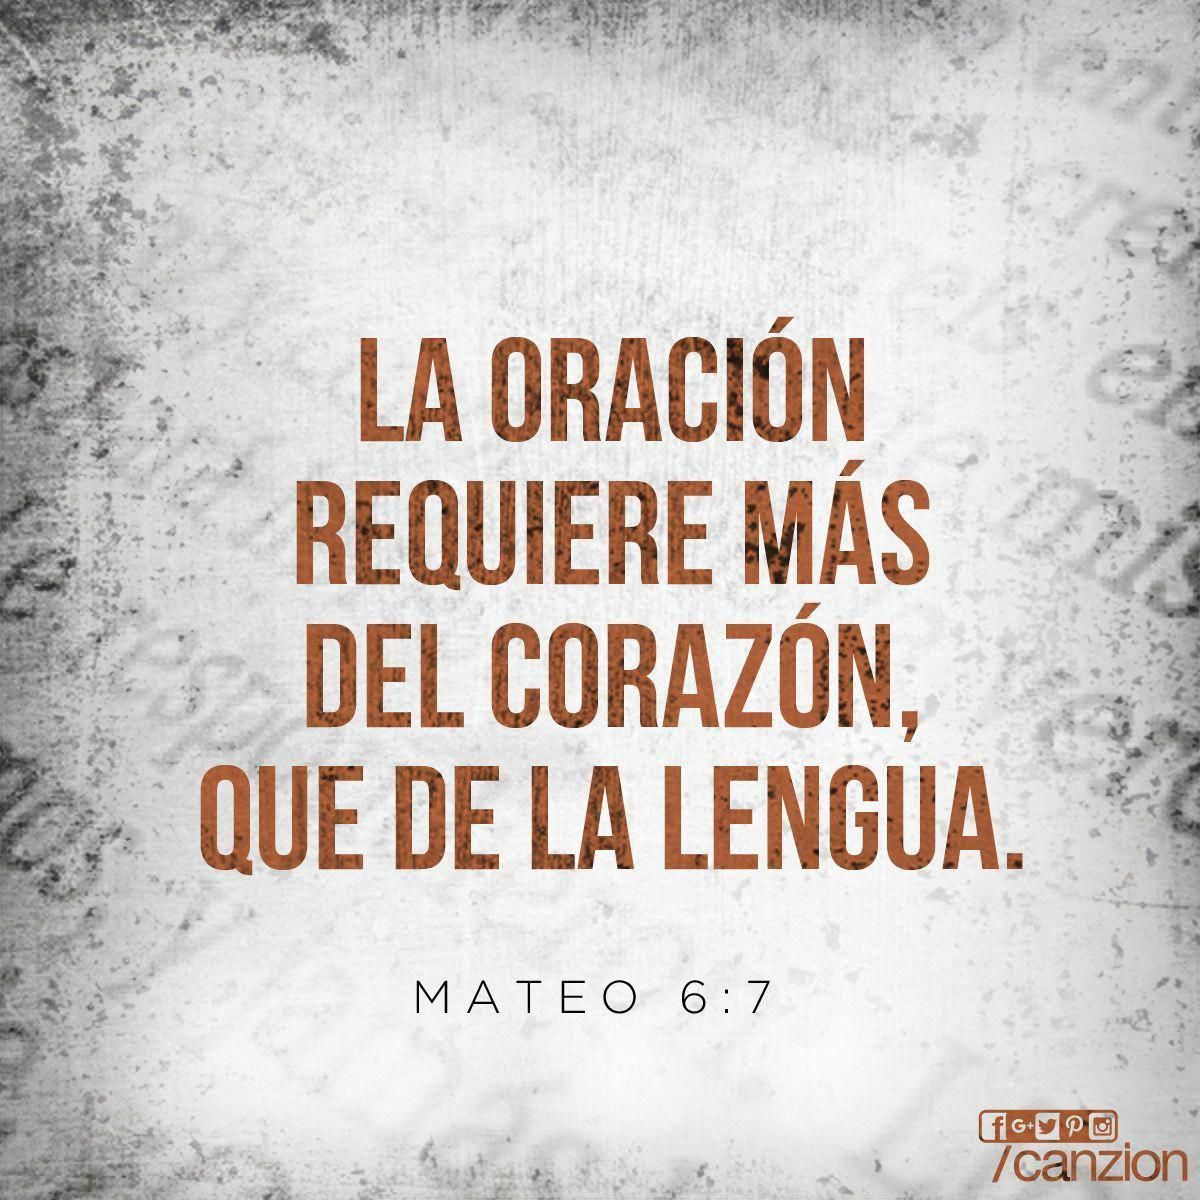 Spanish Christian Memes Vacation Gods Love Quotes Quotes About God Christian Devotions